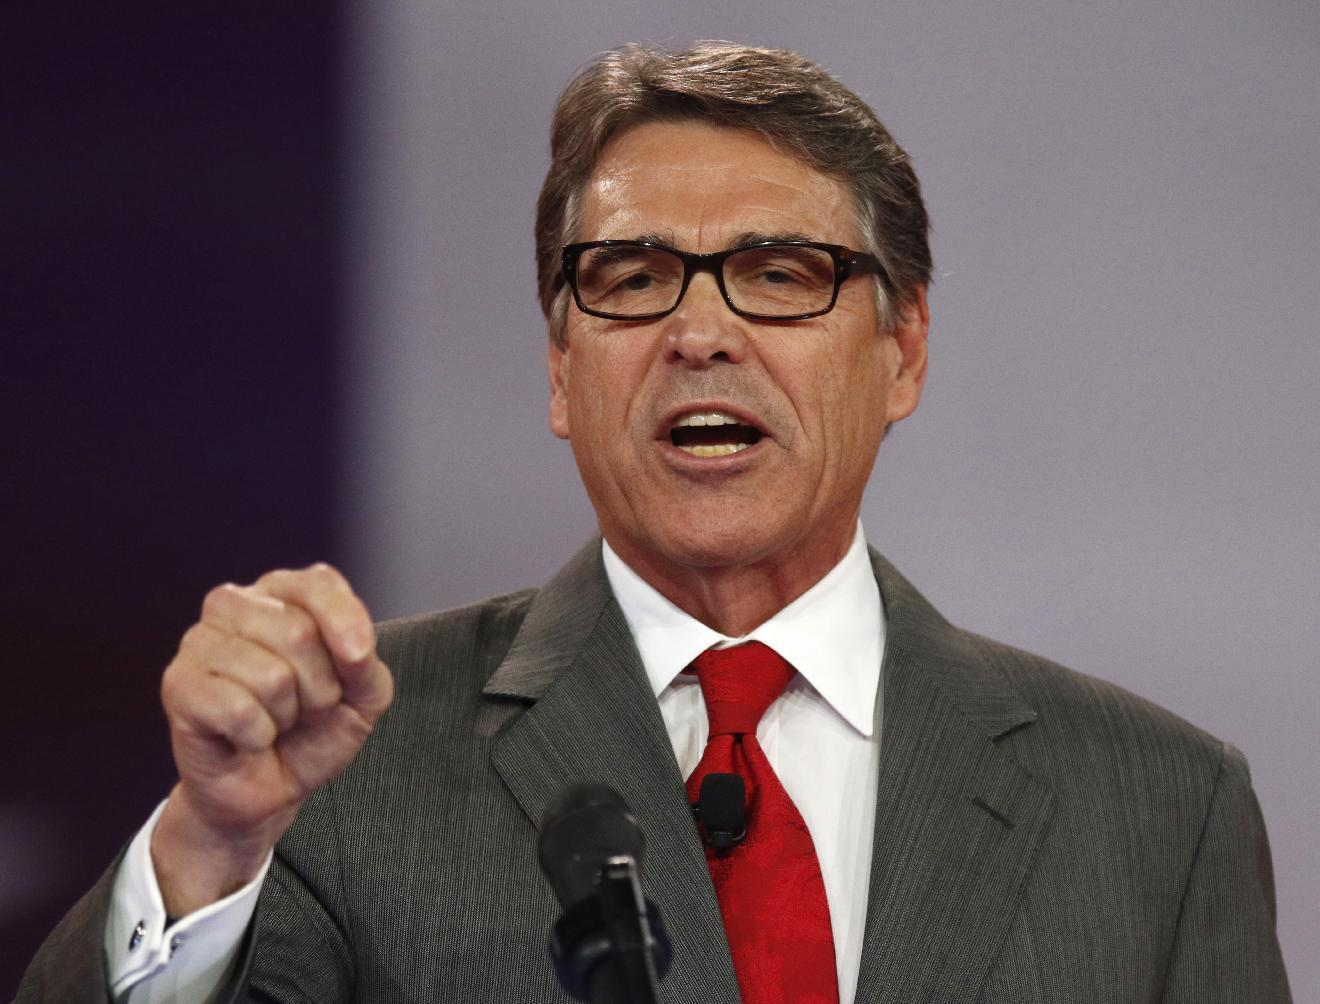 Perry, Santorum presidential hopes undercut by own donors